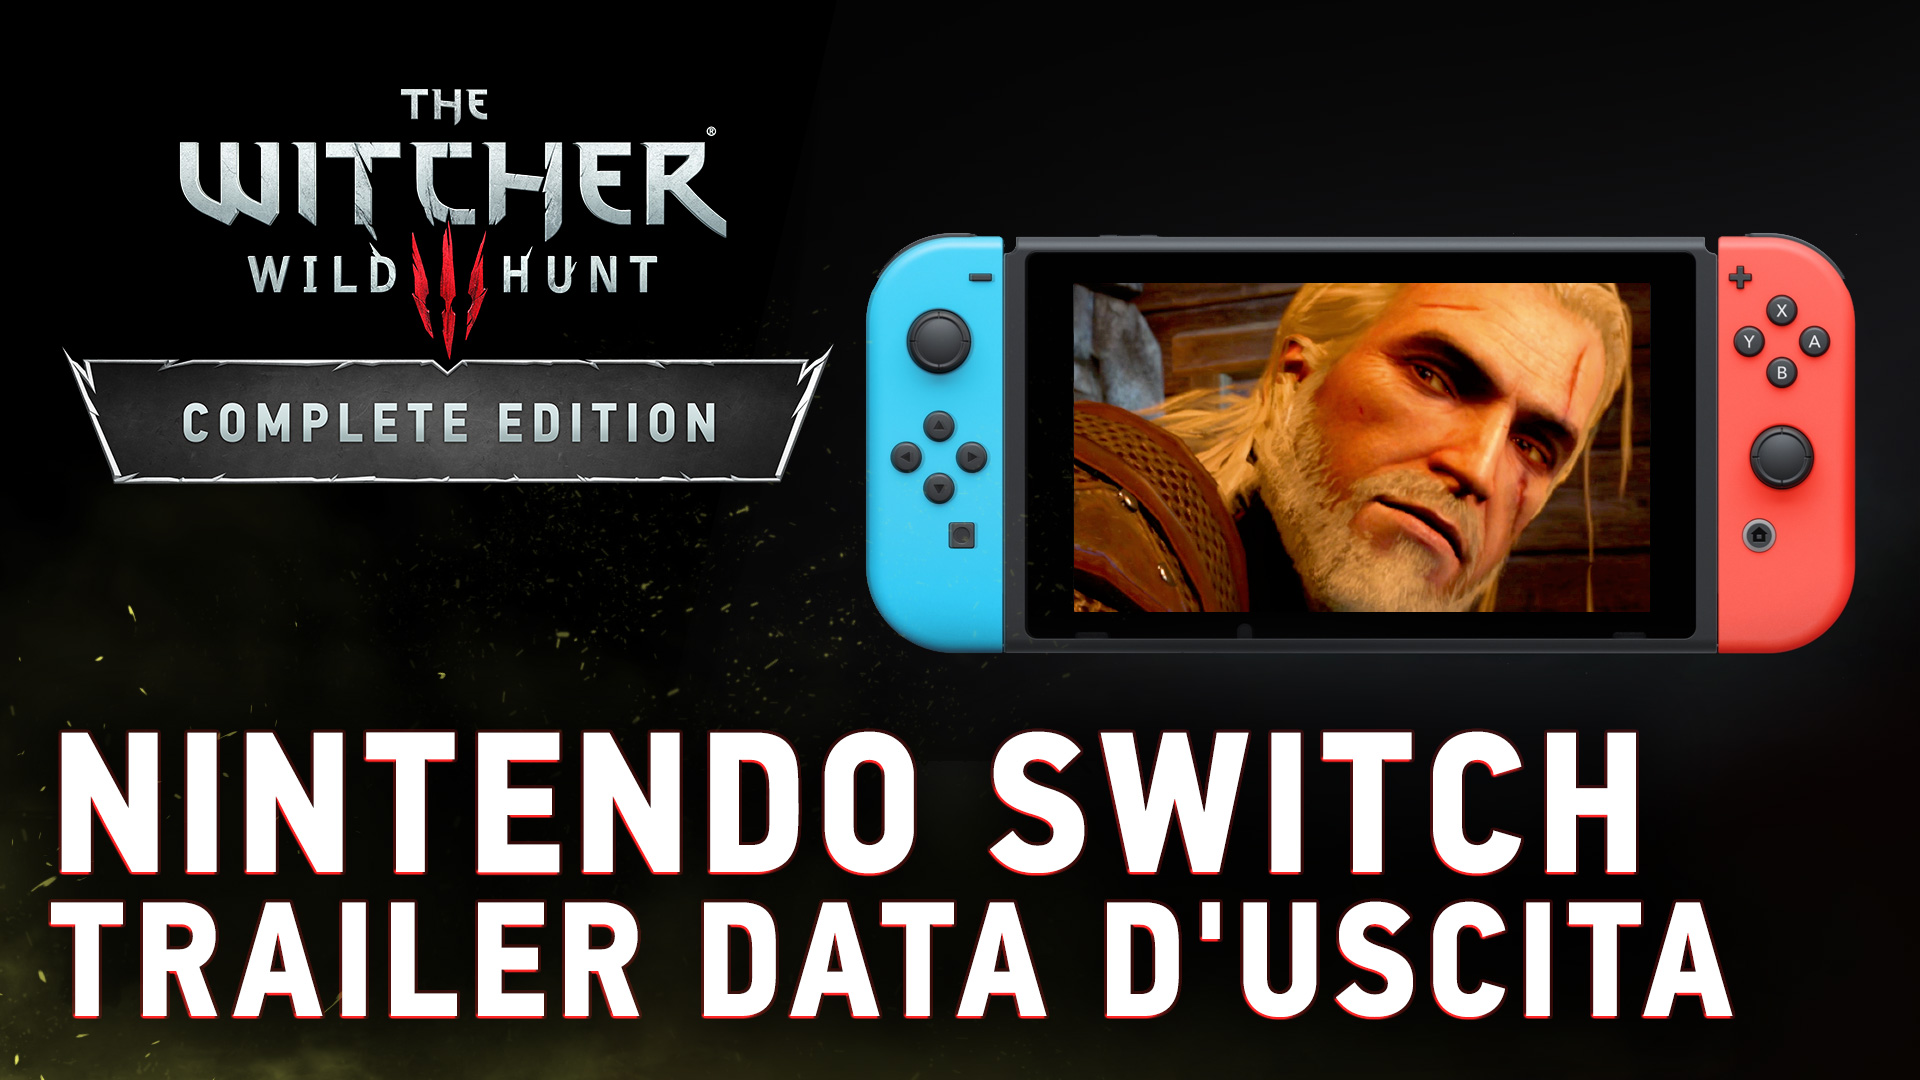 The Witcher 3: annunciata la data di uscita su Nintendo Switch thumbnail